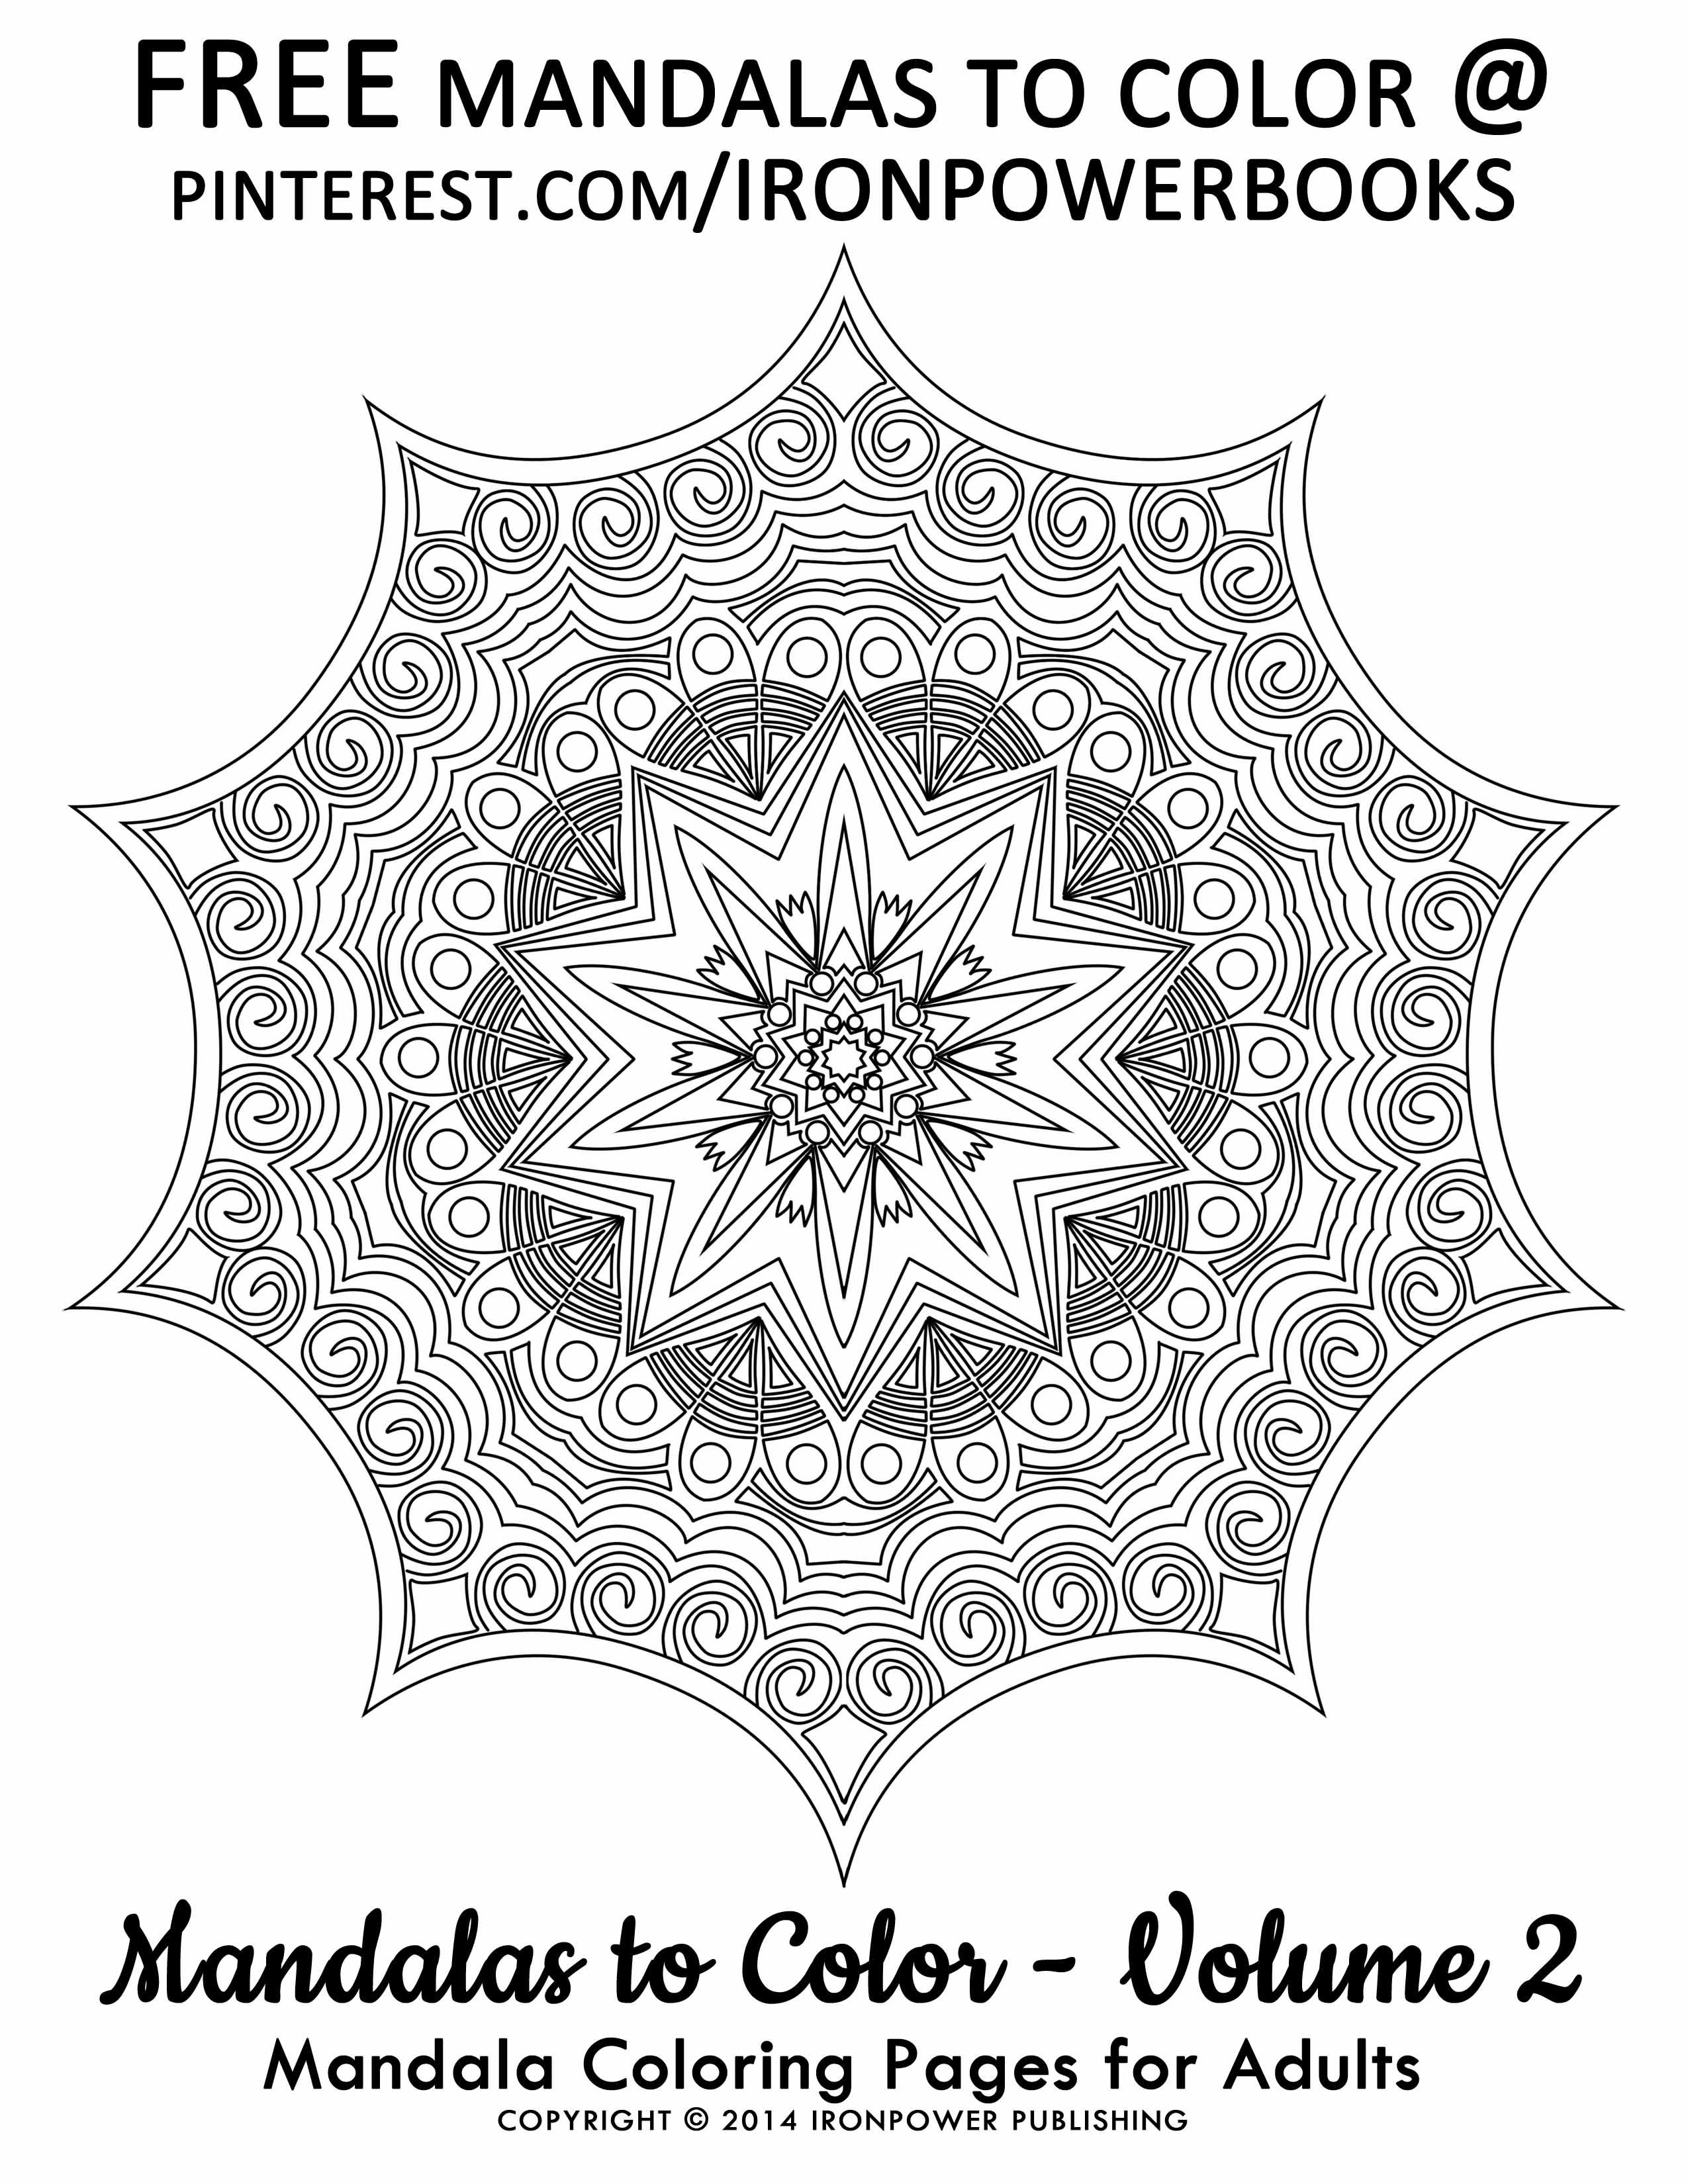 Free mandala coloring pages ironpowerbooks boards this is free